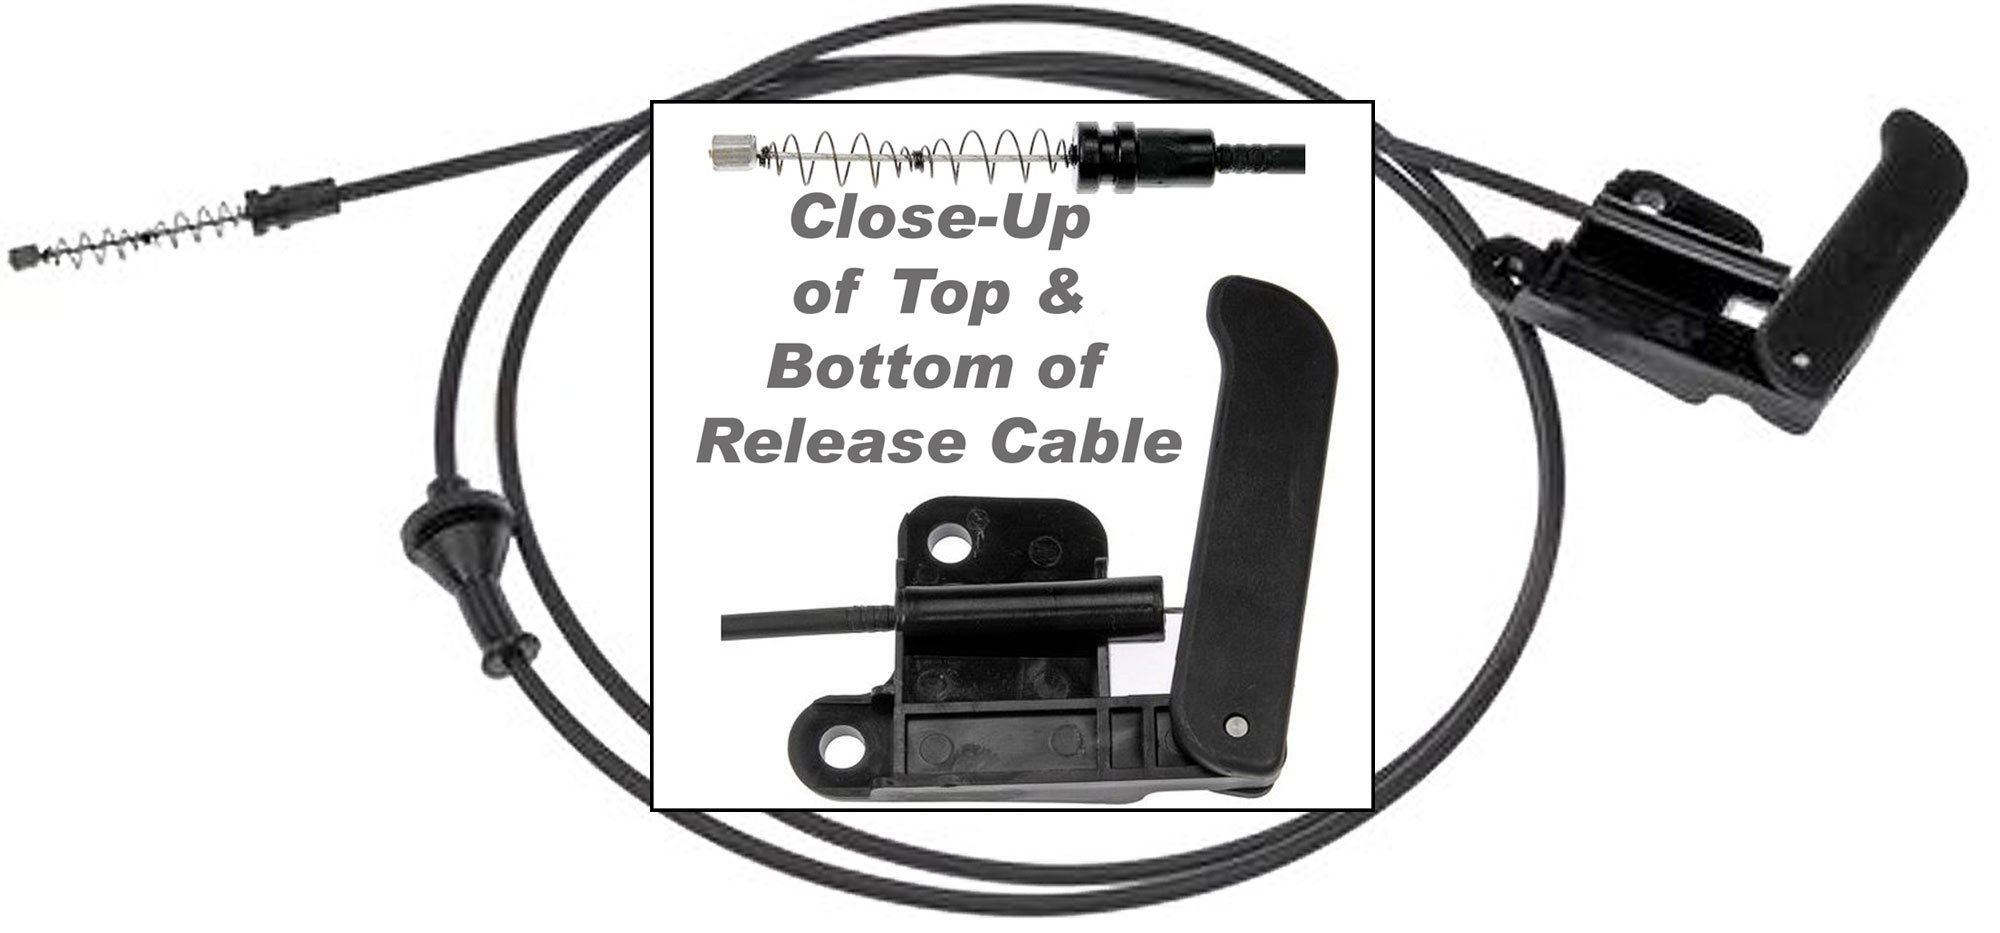 APDTY 023185 Hood Release Cable with Handle For 2002-2004 Chevy S10 Pickup / 2002-2005 Chevy S10 Blazer / 2002-2004 GMC S15 Sonoma Pickup (Replaces GM Part #: 15097973)